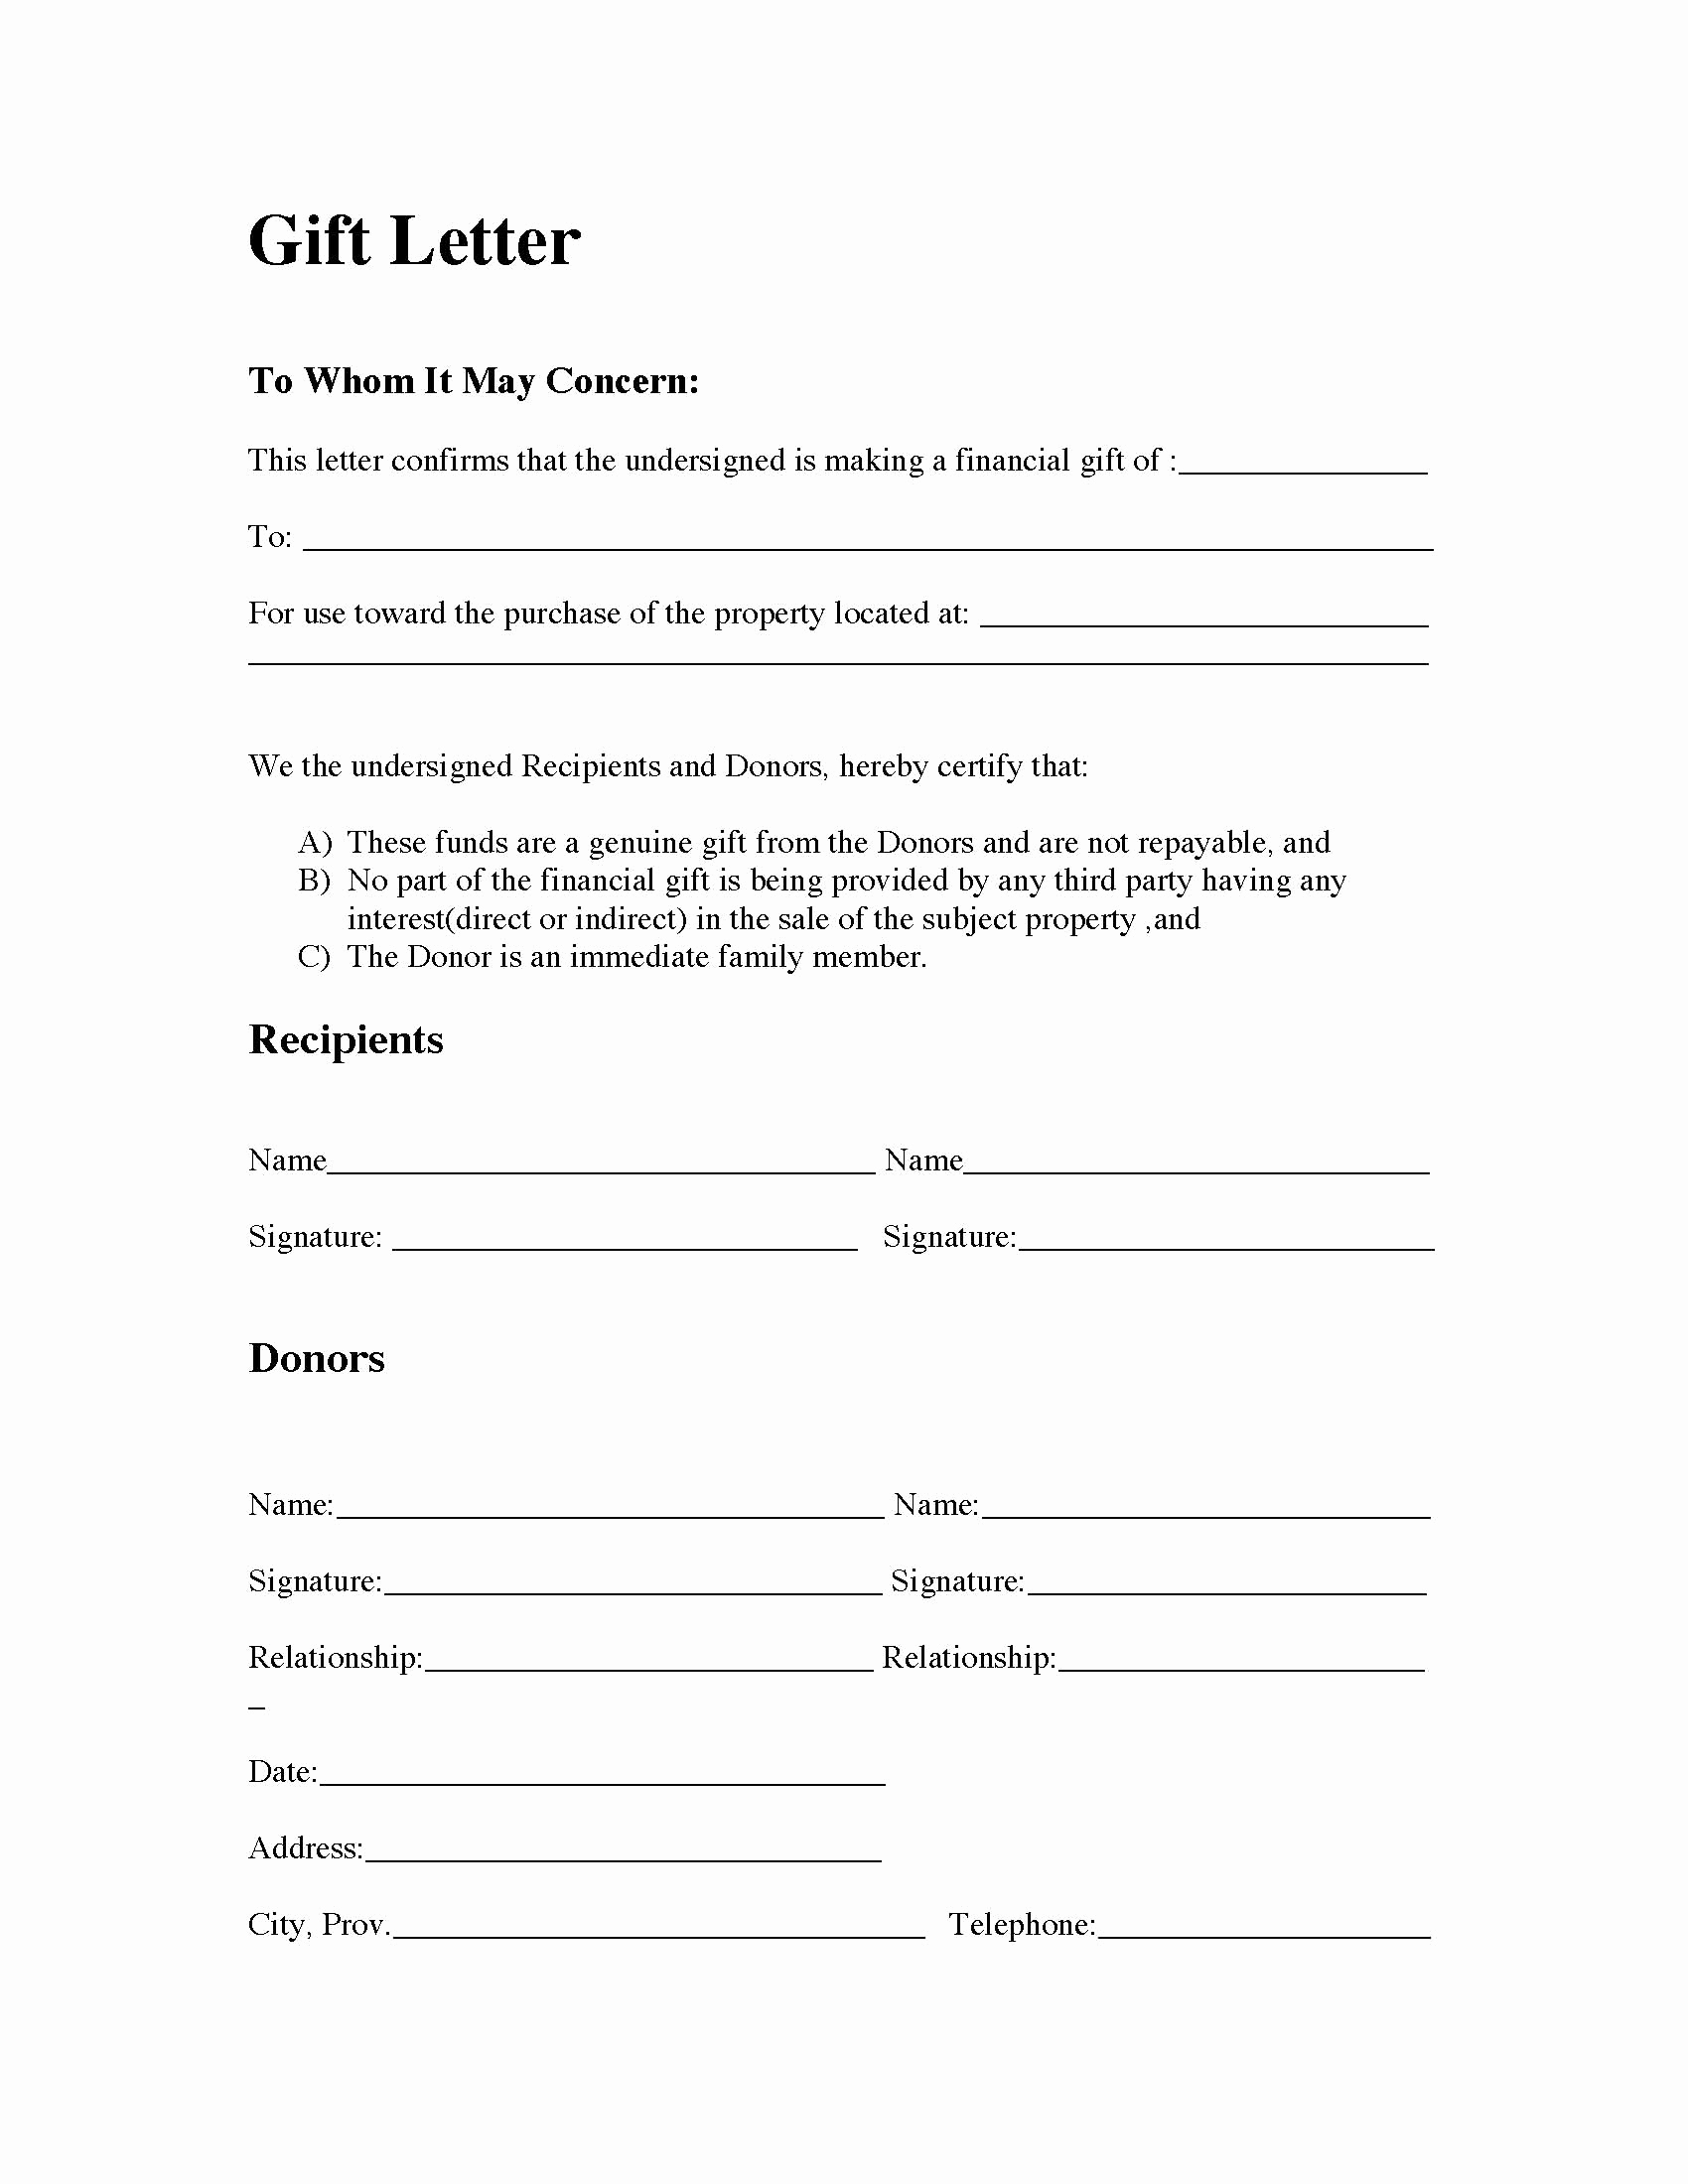 Mortgage Gift Letter Template Fresh Gift Letter for Mortgage Articleezinedirectory – soohongp